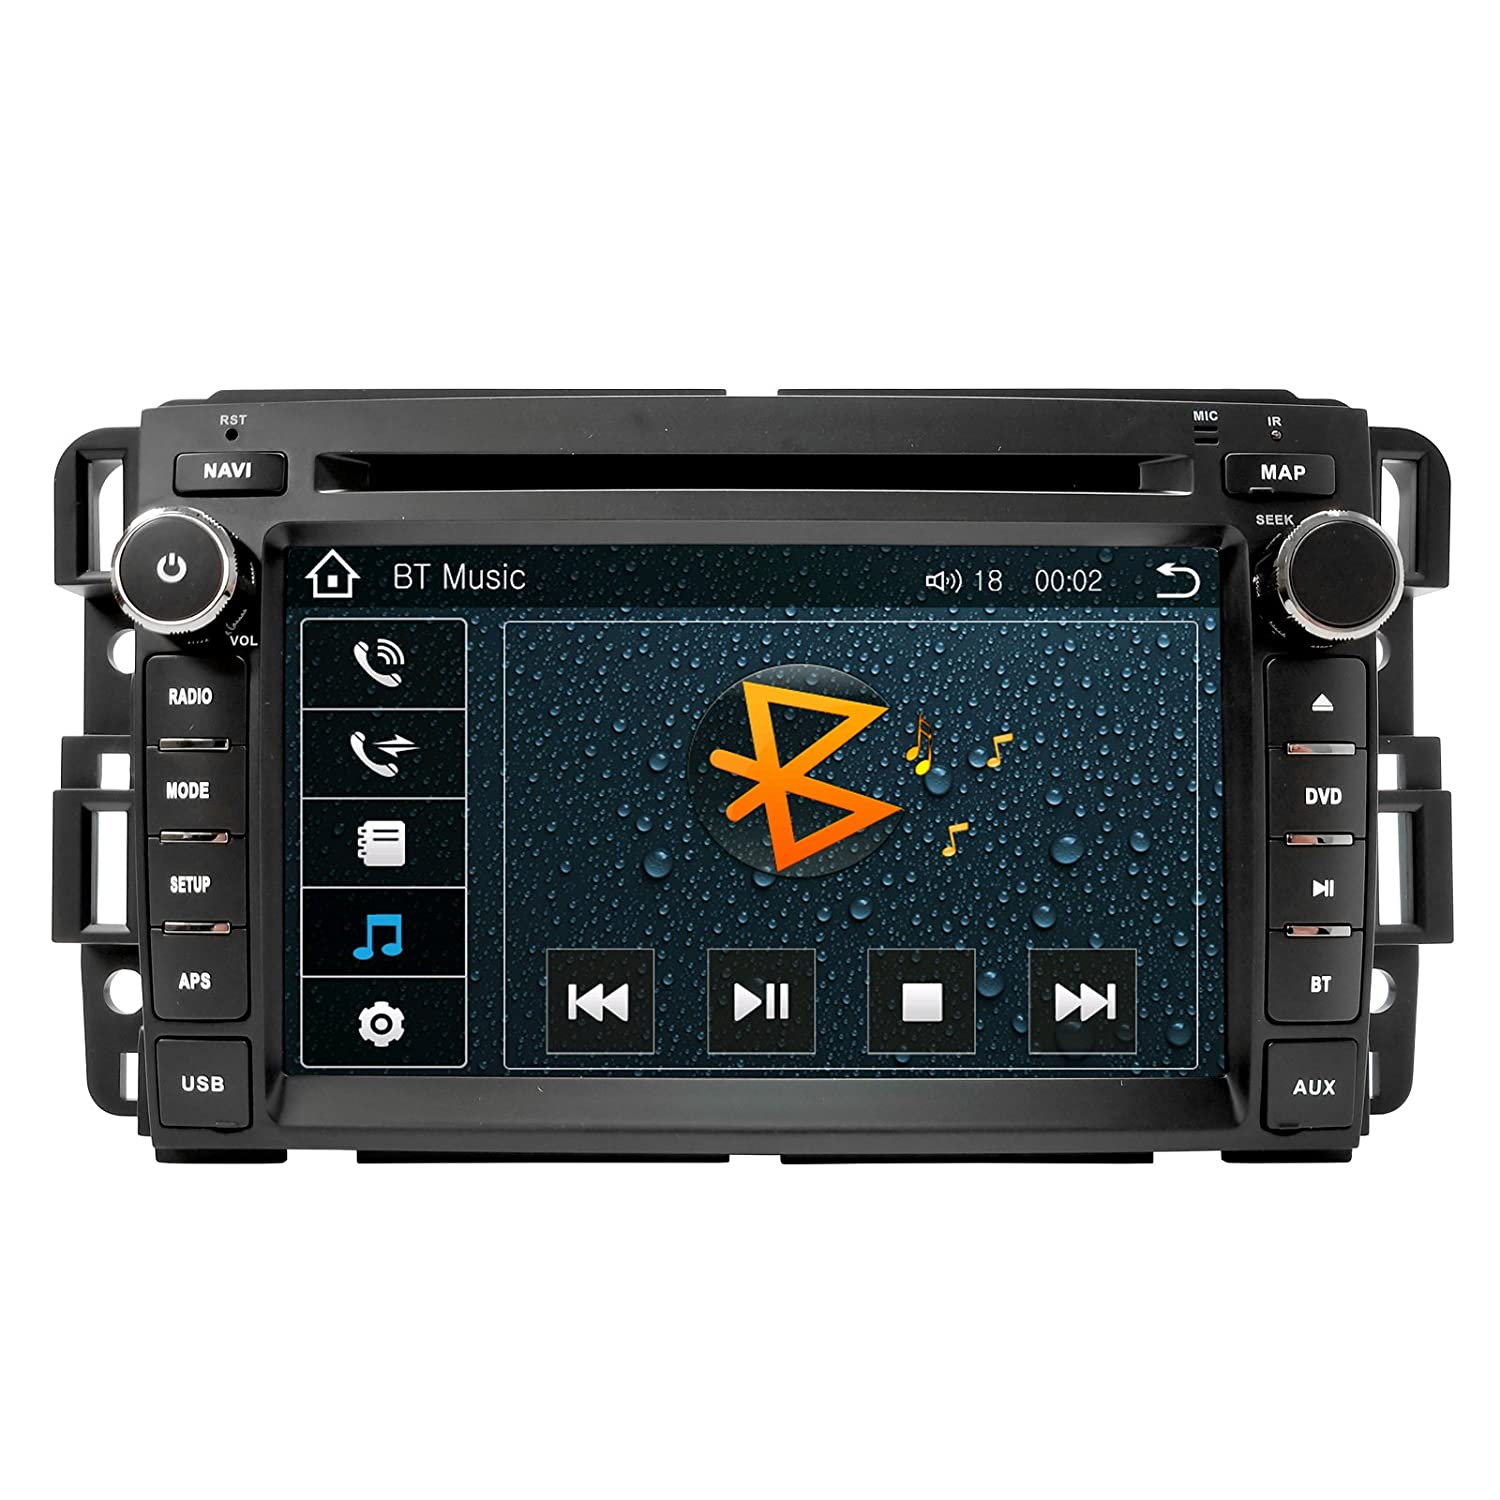 Chevrolet Silverado Bose 07 12 Oem Replacement In Dash 2008 Avalanche Ac Blower Wiring Diagram Double Din Touch Screen Gps Navigation Radio 2007 2010